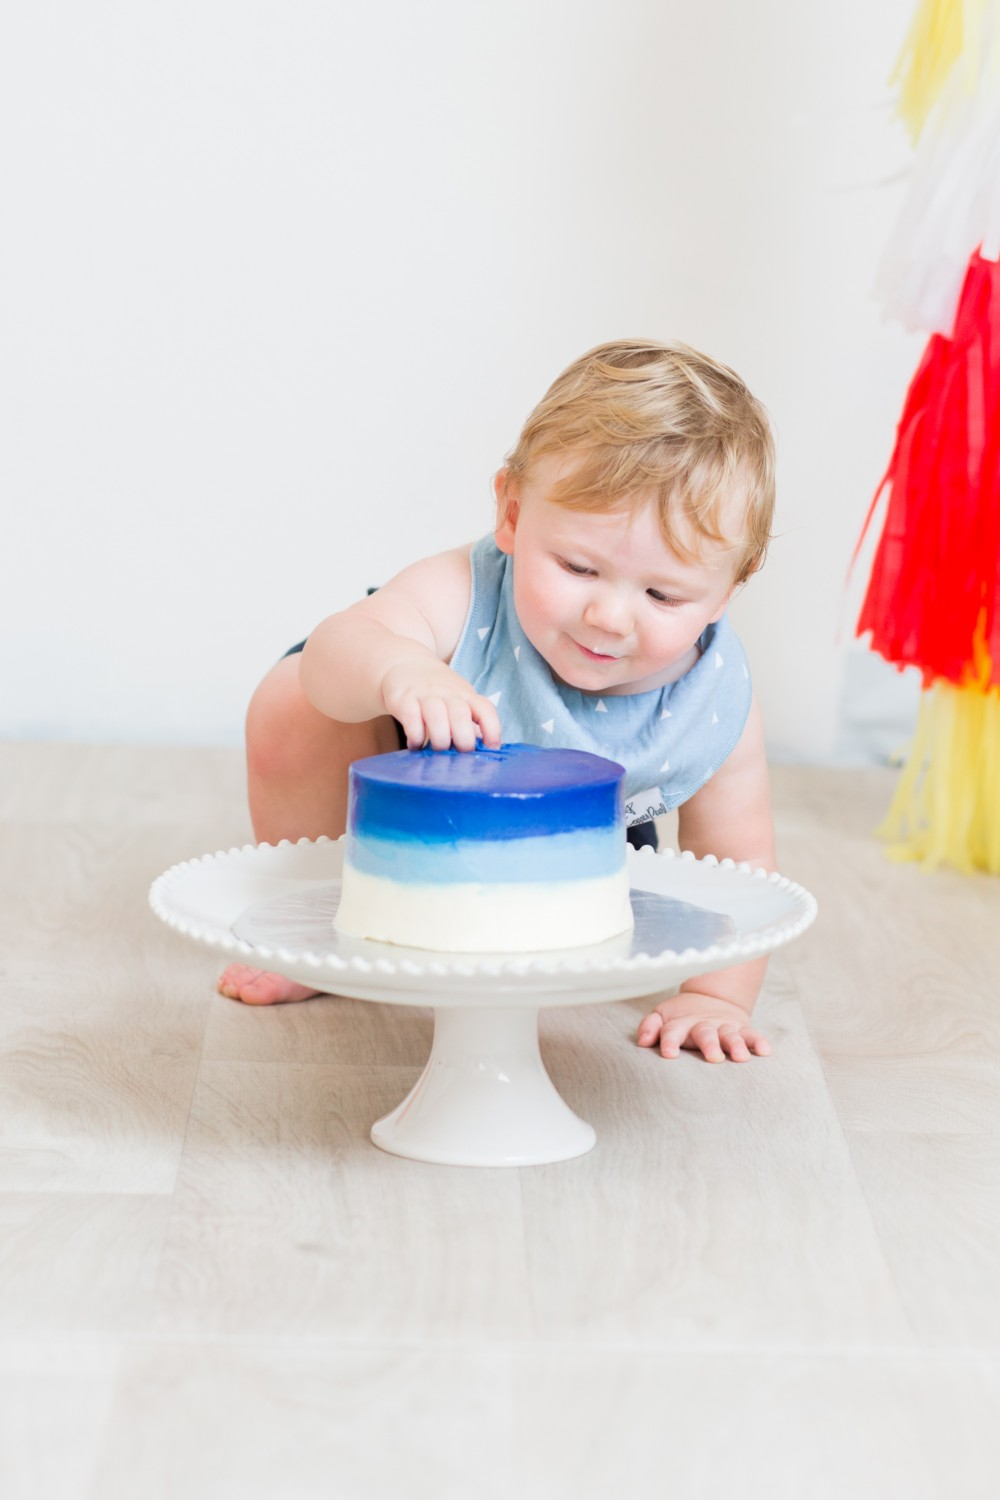 Mason's Turning One-Smash Cake Photoshoot-First Birthday-Smash Cake-First Birthday Photoshoot-Have Need Want 21